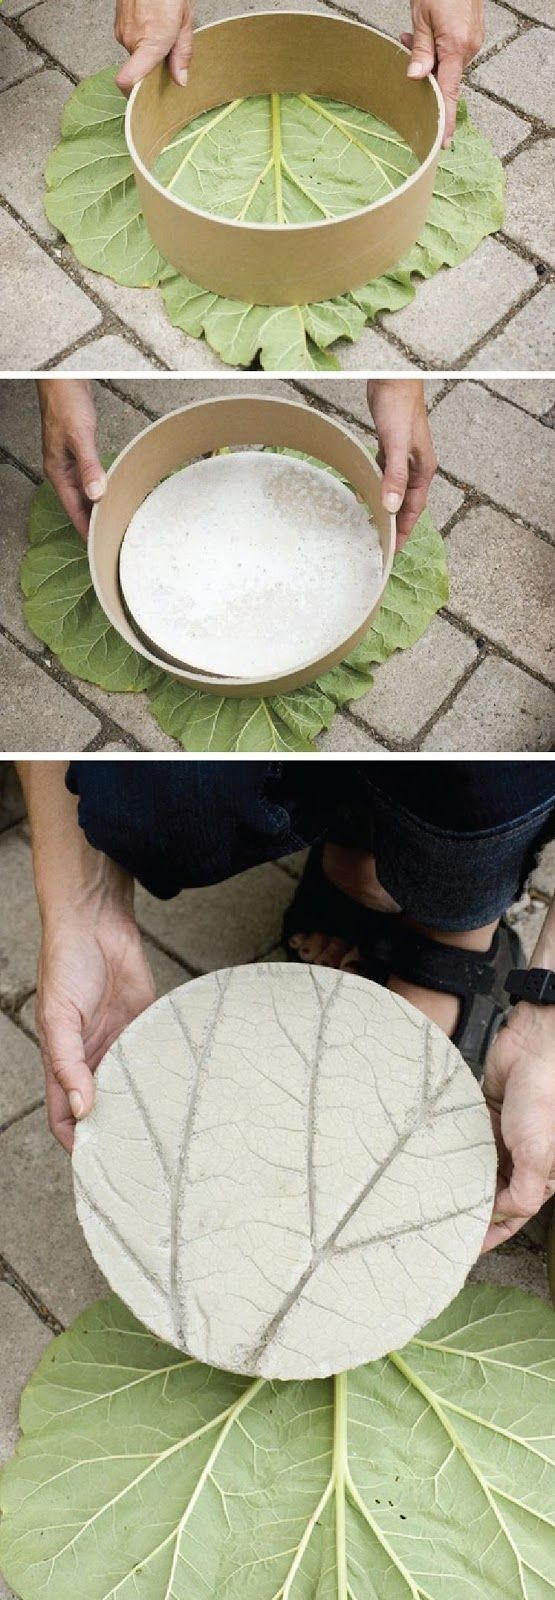 DIY Garden Stone| Since it is fall… it could be cool to use autumn leaves...